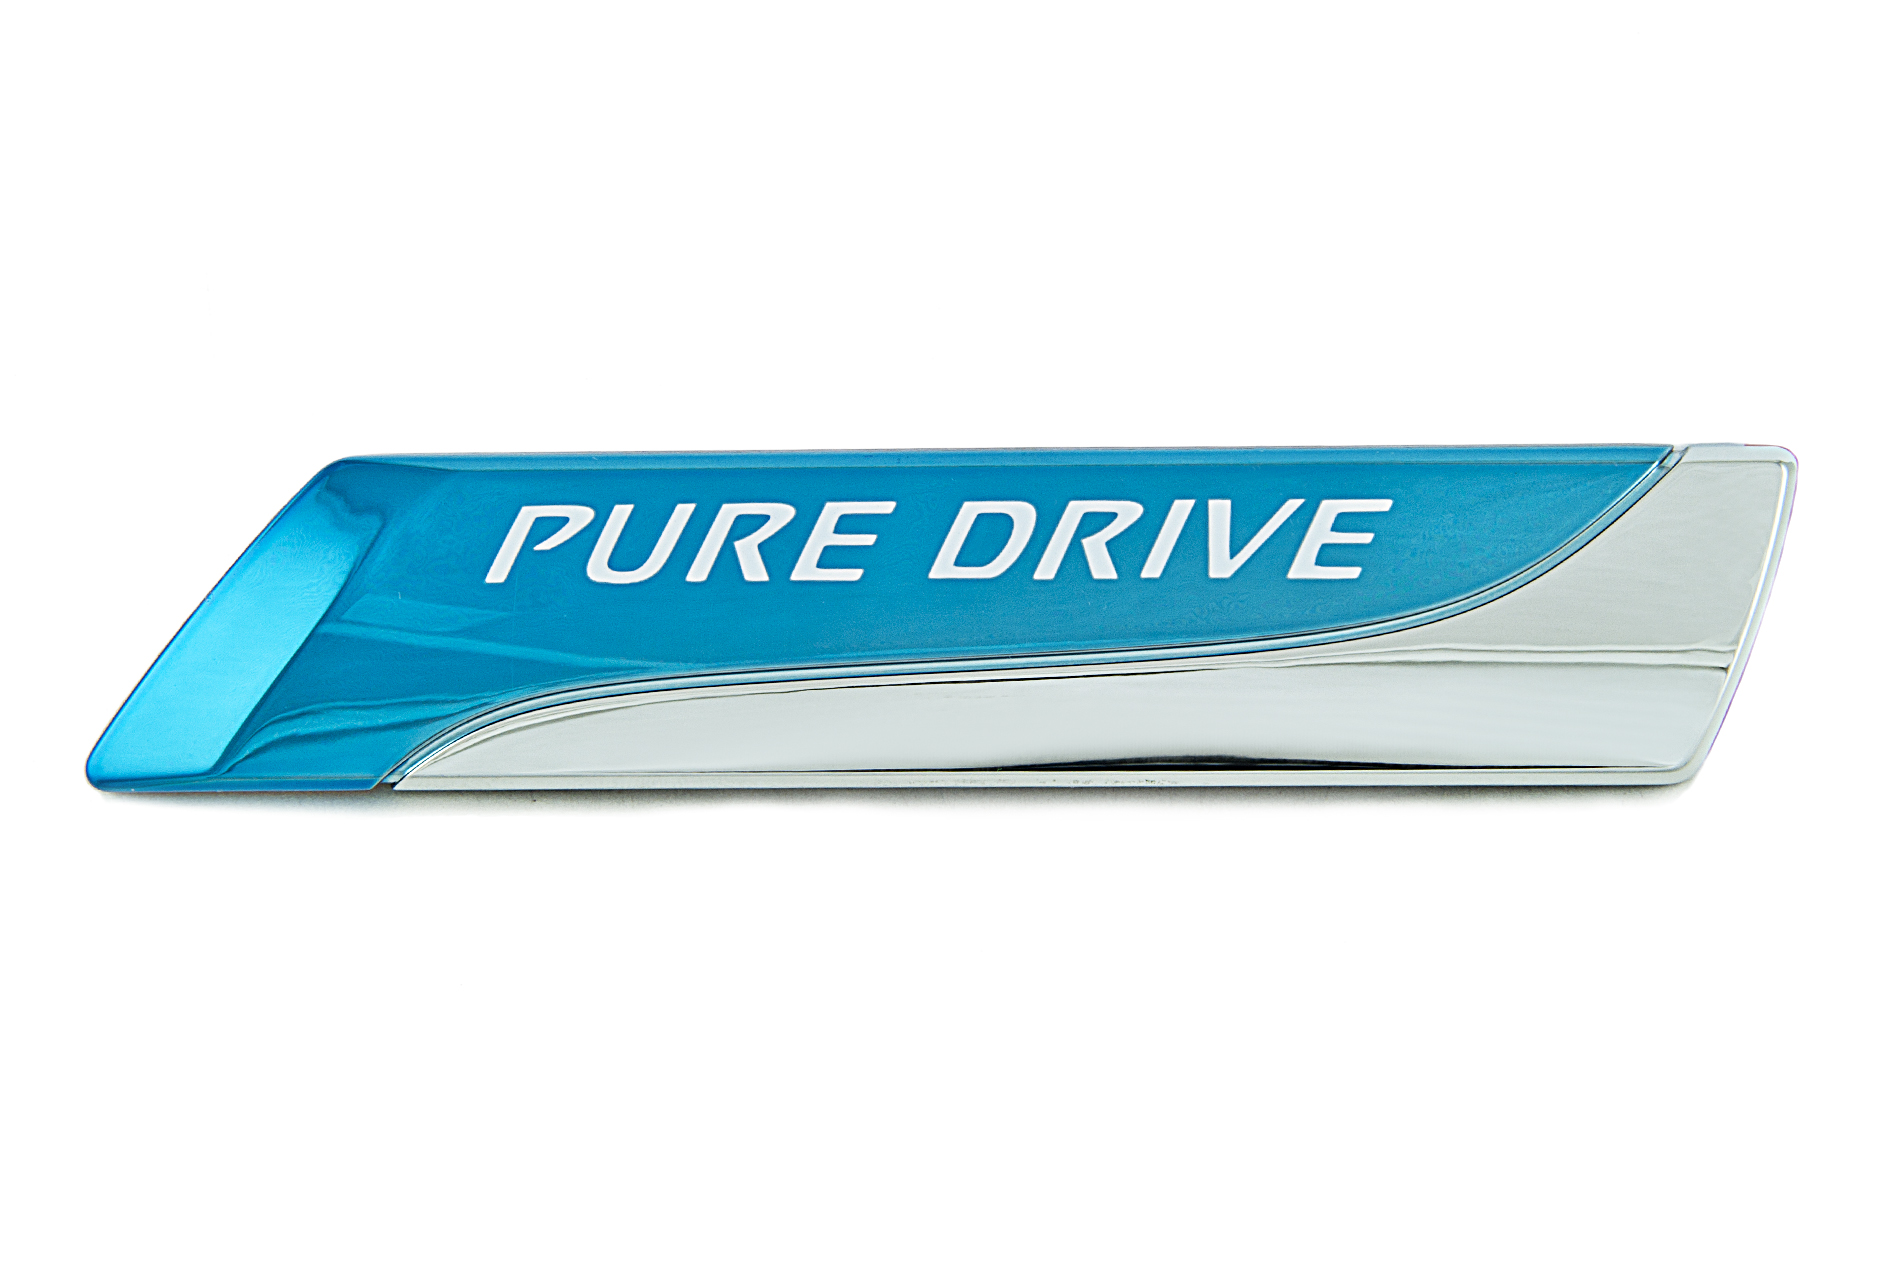 """Nissan Genuine """"PURE DRIVE"""" Badge Emblem Rear For Tailgate Boot"""